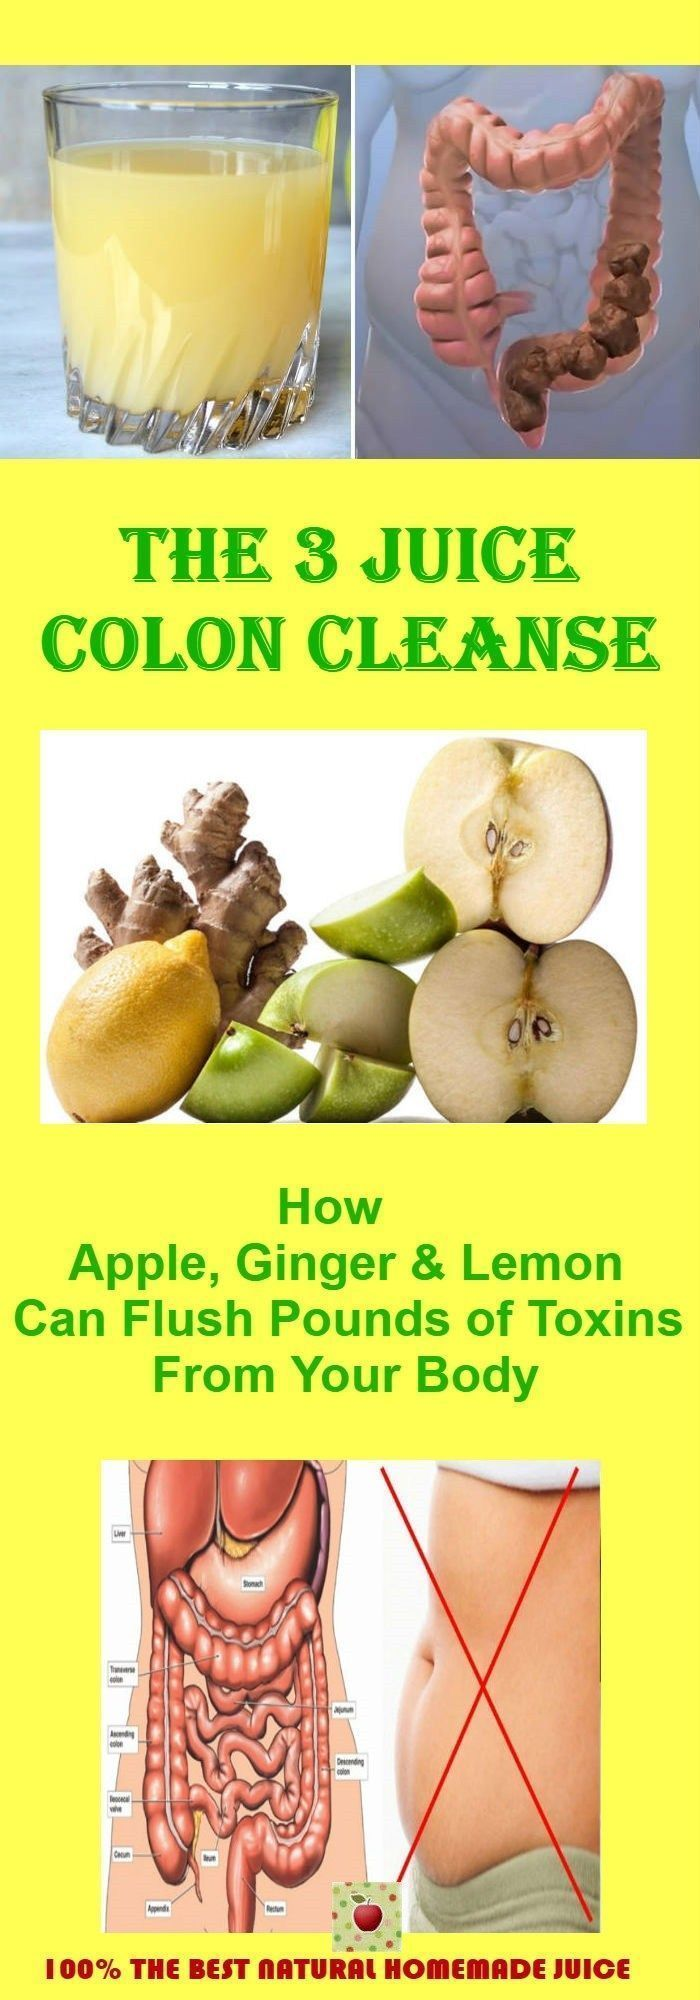 The 3 Juice Colon Cleanse How Apple Ginger and Lemon Can Flush Pounds of Toxins From Your Body #cleansecolon